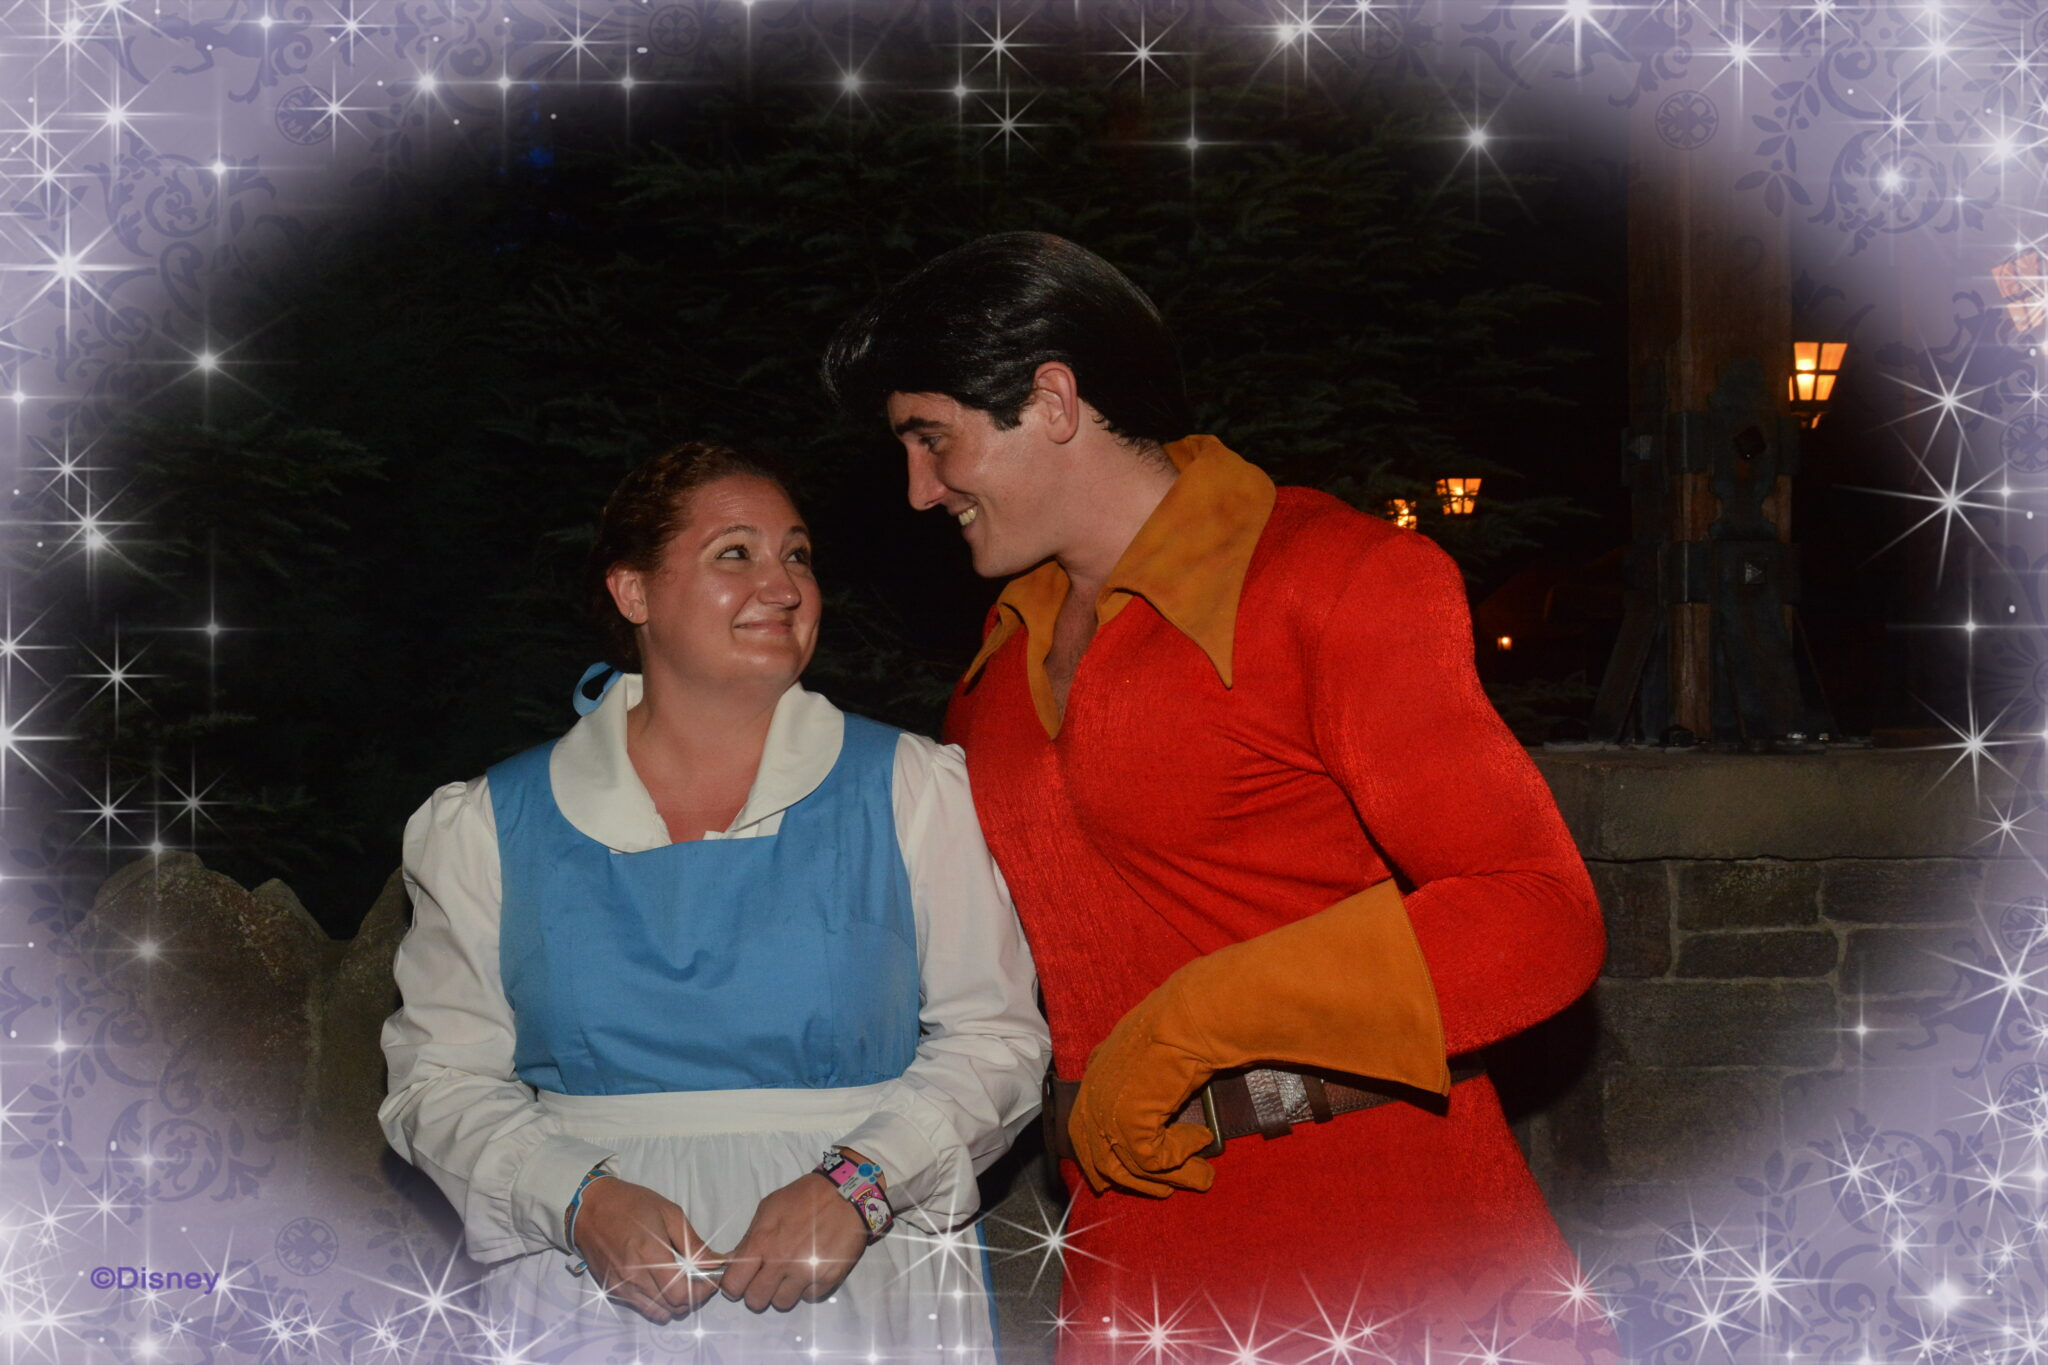 Dressed up as Belle at Mickey's Not So Scary Halloween Party meeting Gaston.